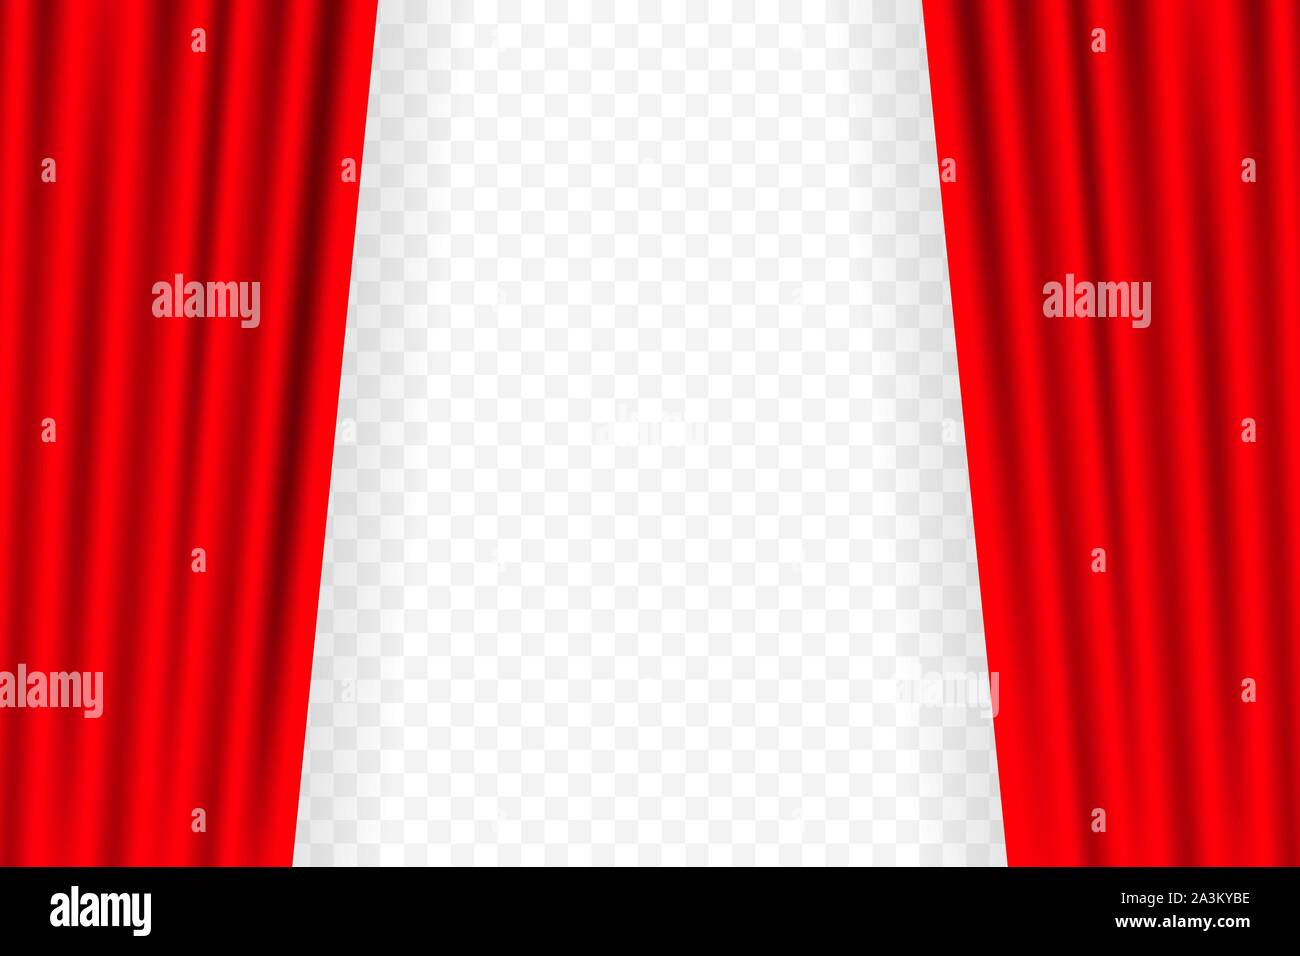 Entertainment Curtains Background For Movies Beautiful Red Theatre Folded Curtain Drapes On Black Stage Vector Stock Illustration Image Art Alamy